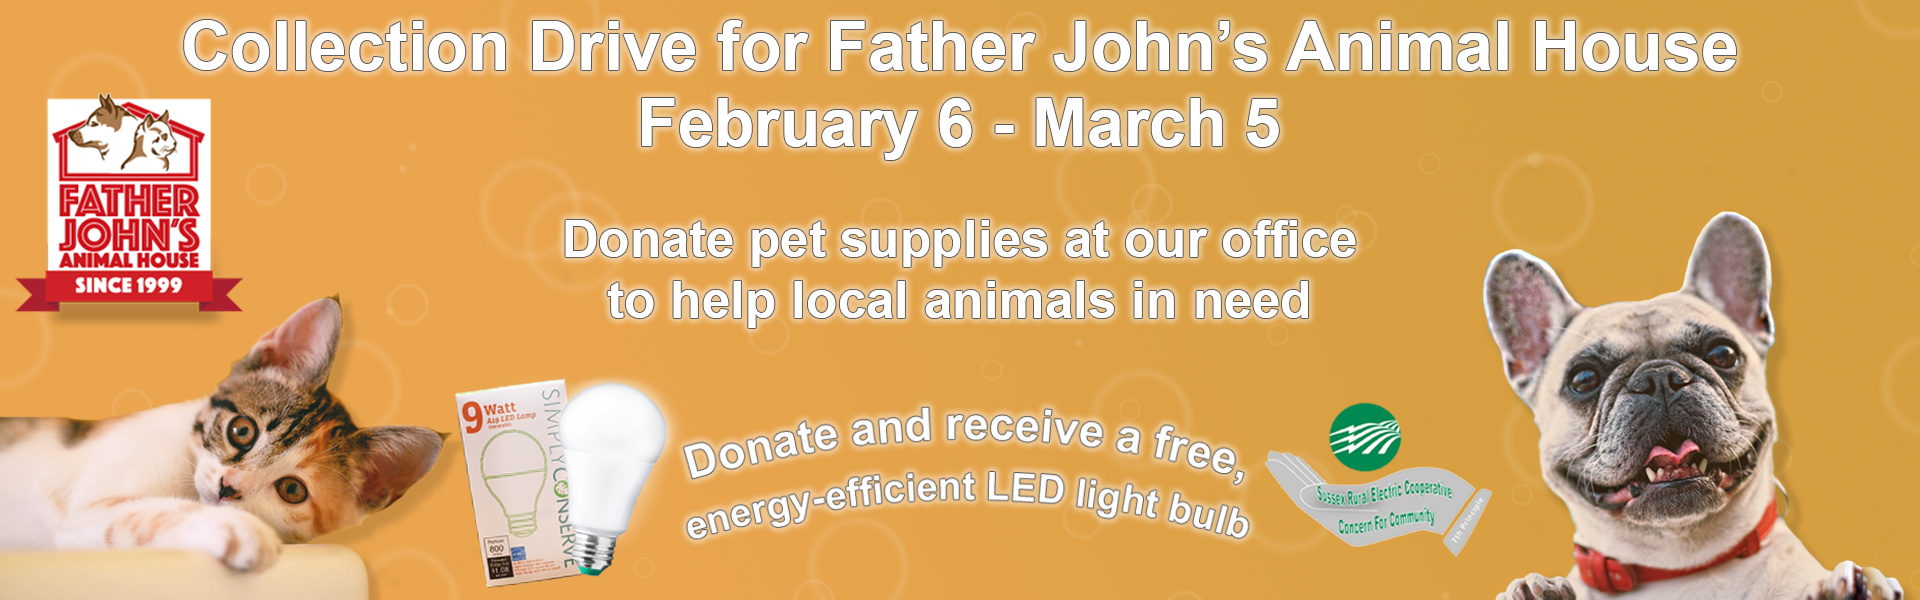 Donate to our drive to support Father John's Animal House in Lafayette